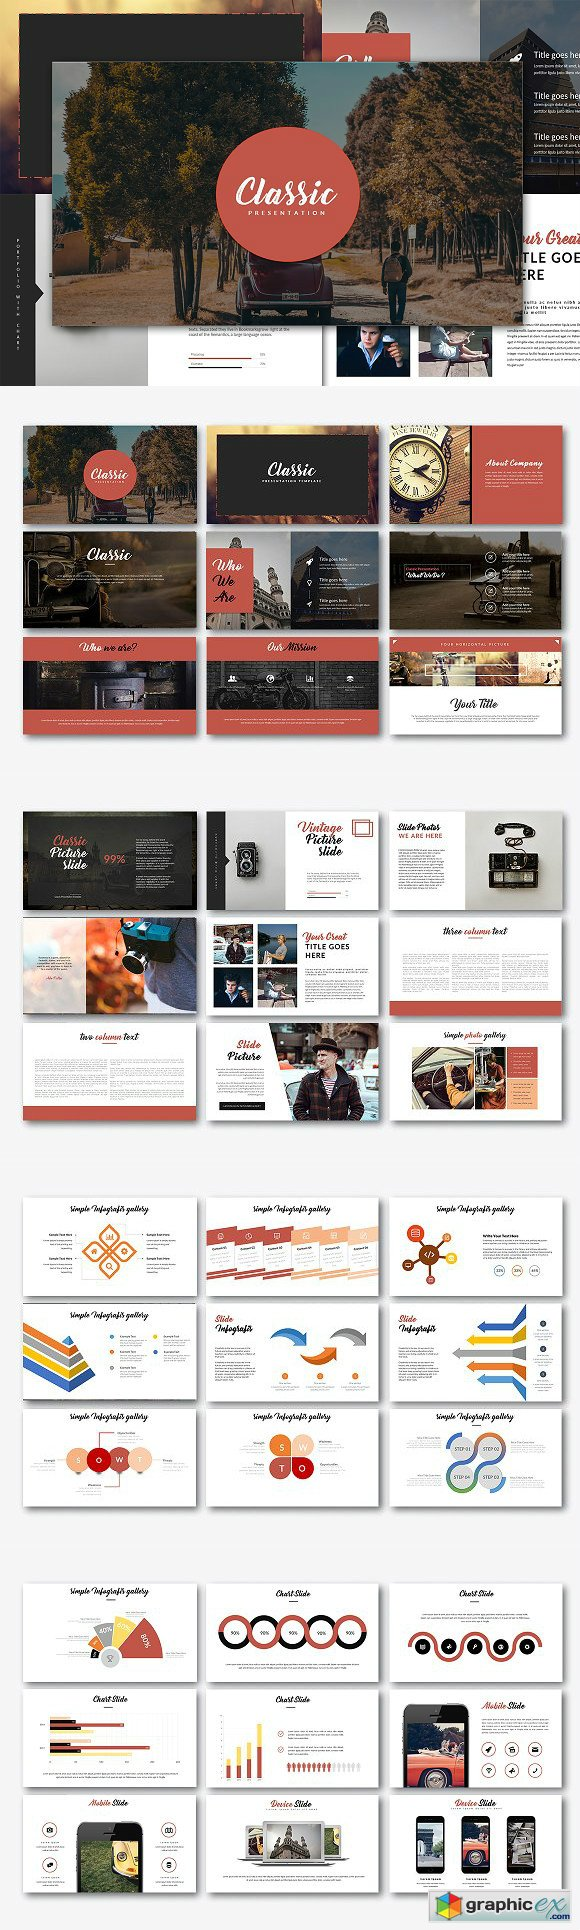 classic powerpoint template » free download vector stock image, Powerpoint templates